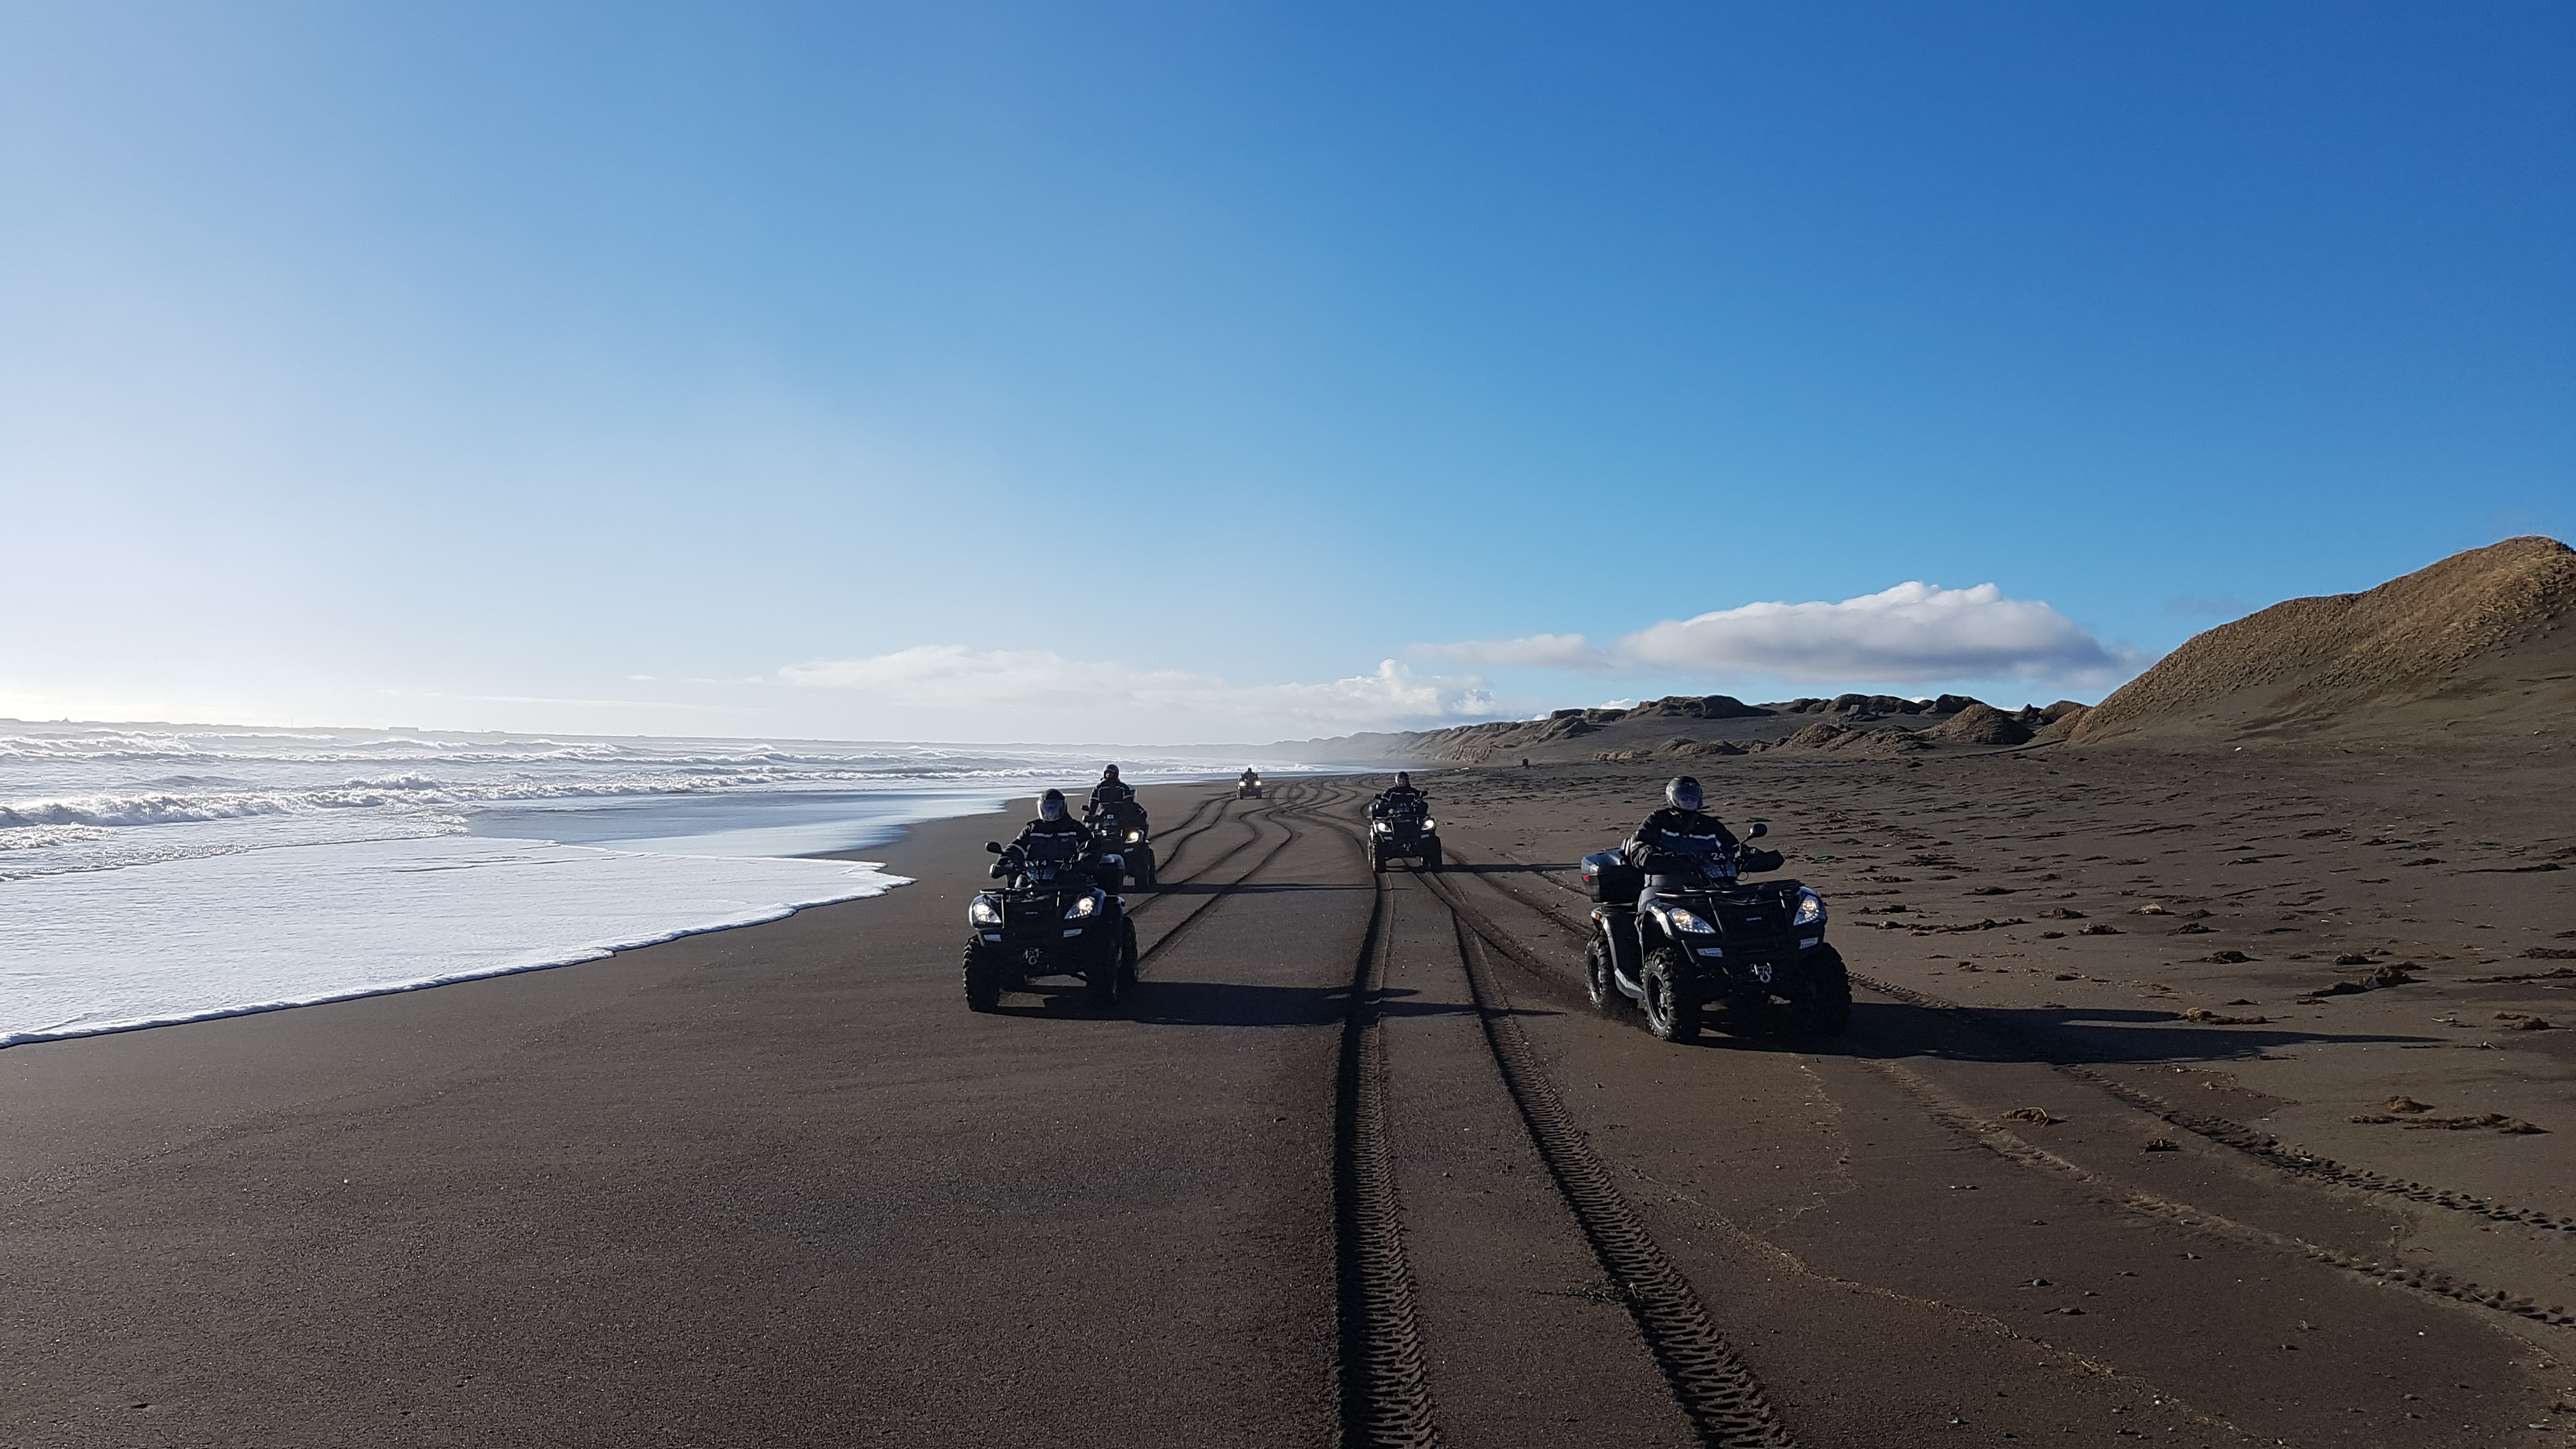 Travellers on ATV's, driving on a Black Sand Beach.